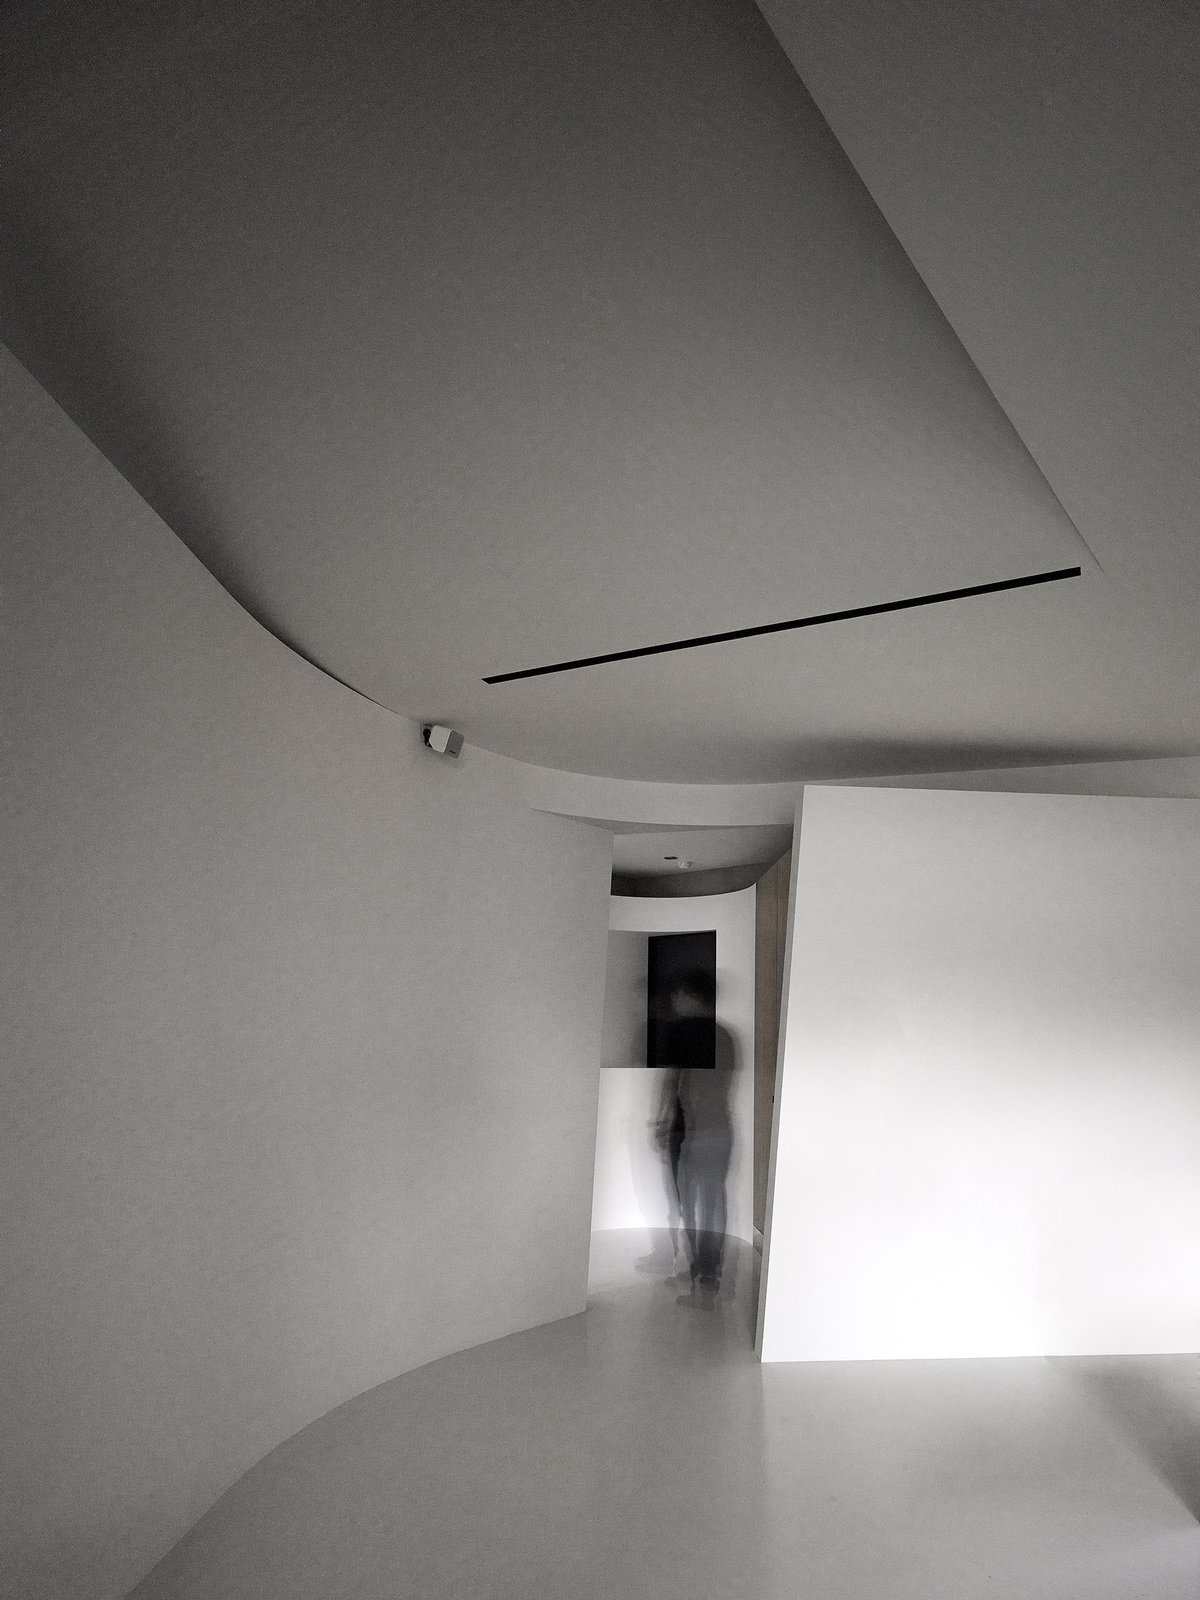 After passing an in-between turning defined by two curved partitions, one enters the private area that contains a bedroom, a bathroom and a walk-in closet.  Tagged: Interior, Living Room, Concrete Floor, and Ceiling Lighting.  Fluid House by shi-chieh lu